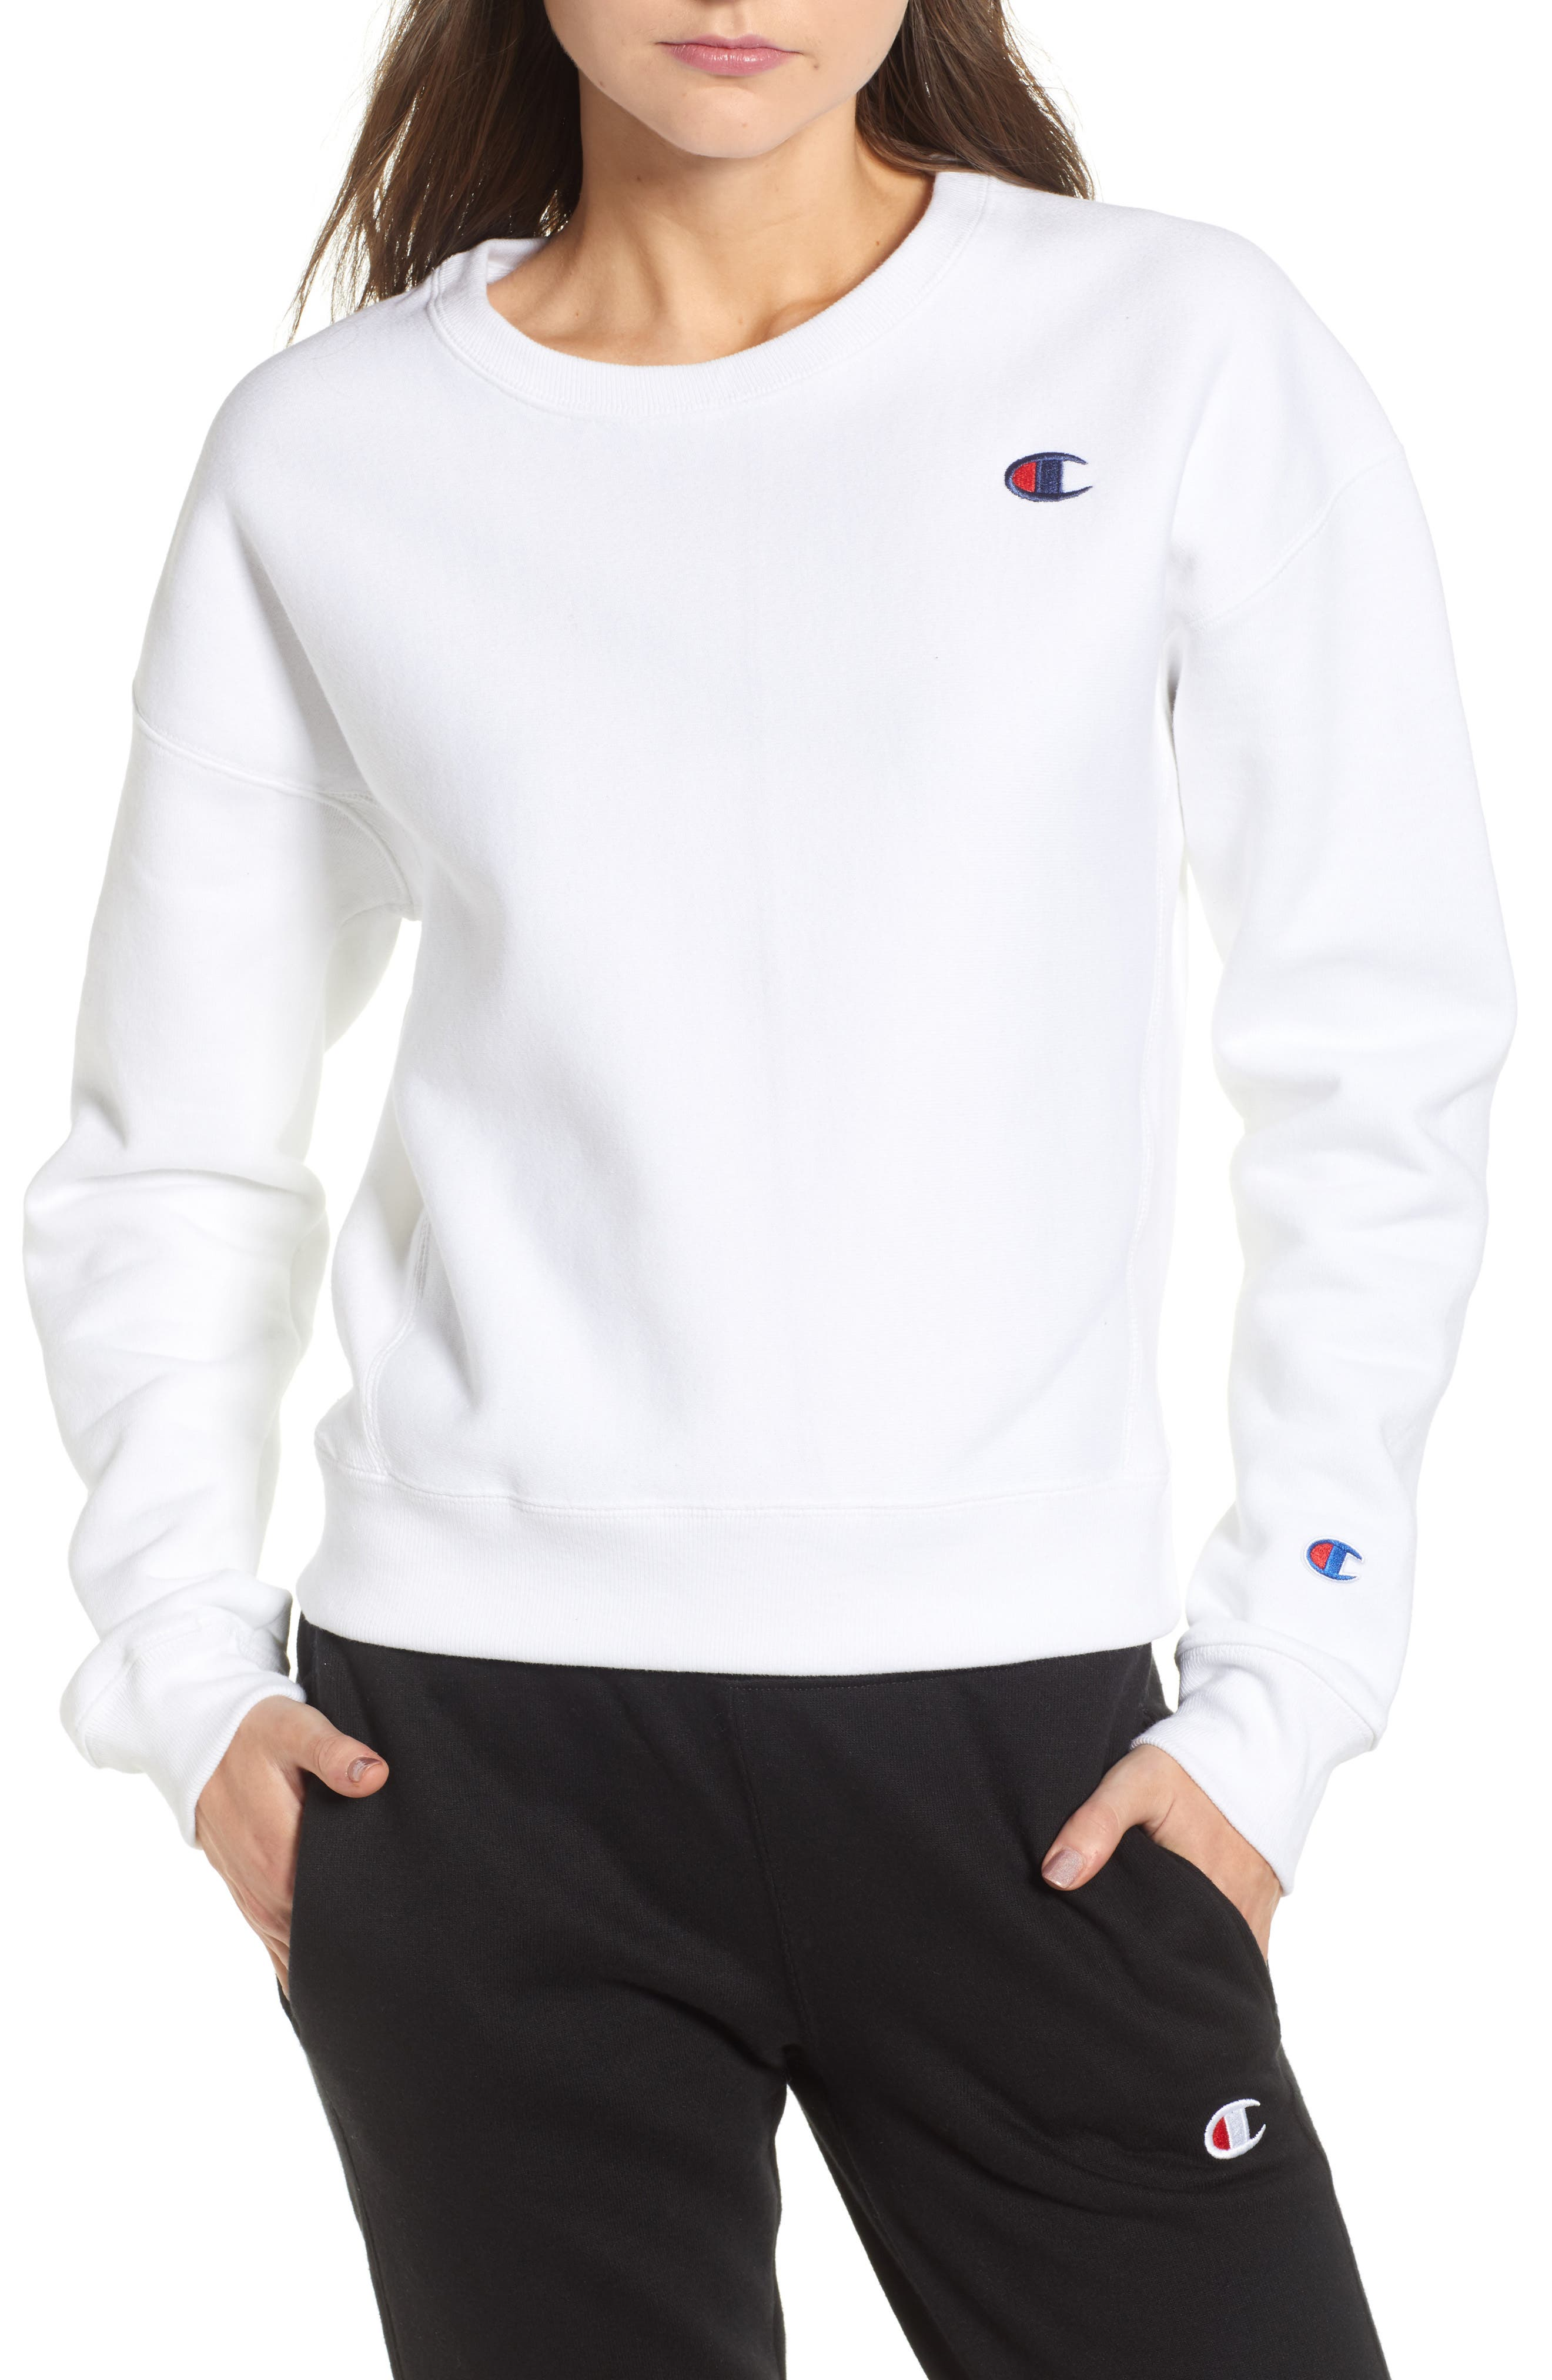 Reverse Weave Crew Sweatshirt,                             Main thumbnail 1, color,                             100